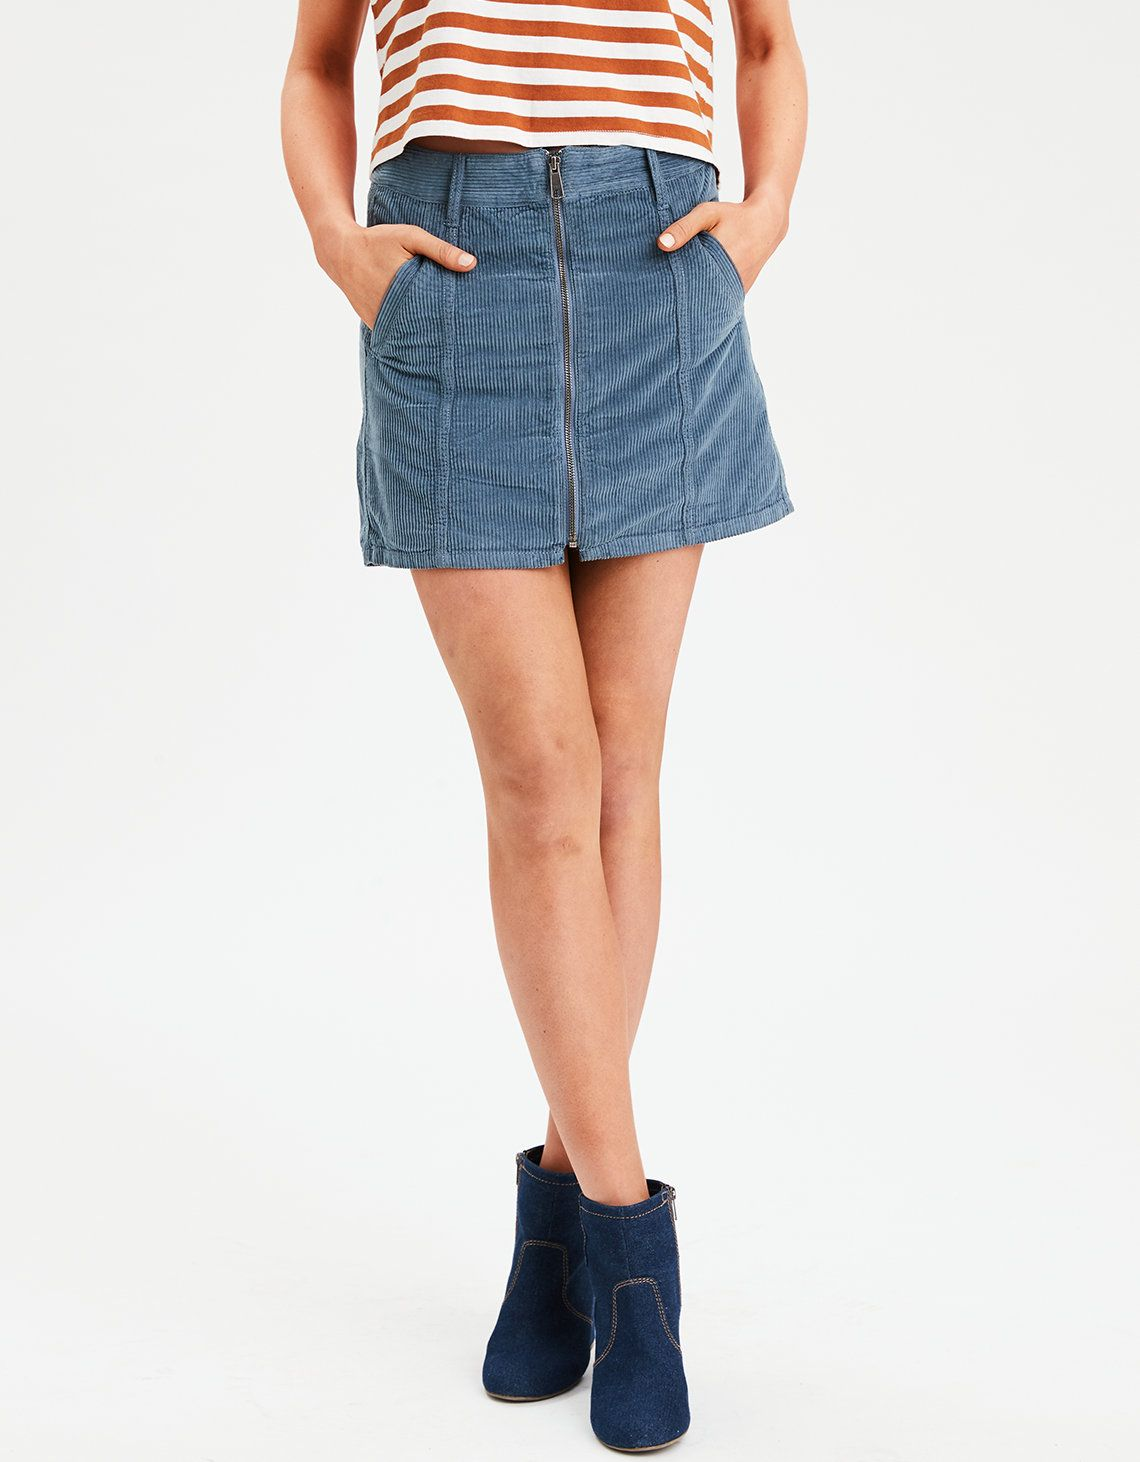 992b1e1b7e Product Image Shop American Eagle Outfitters for men's and women's jeans,  T's, shoes and